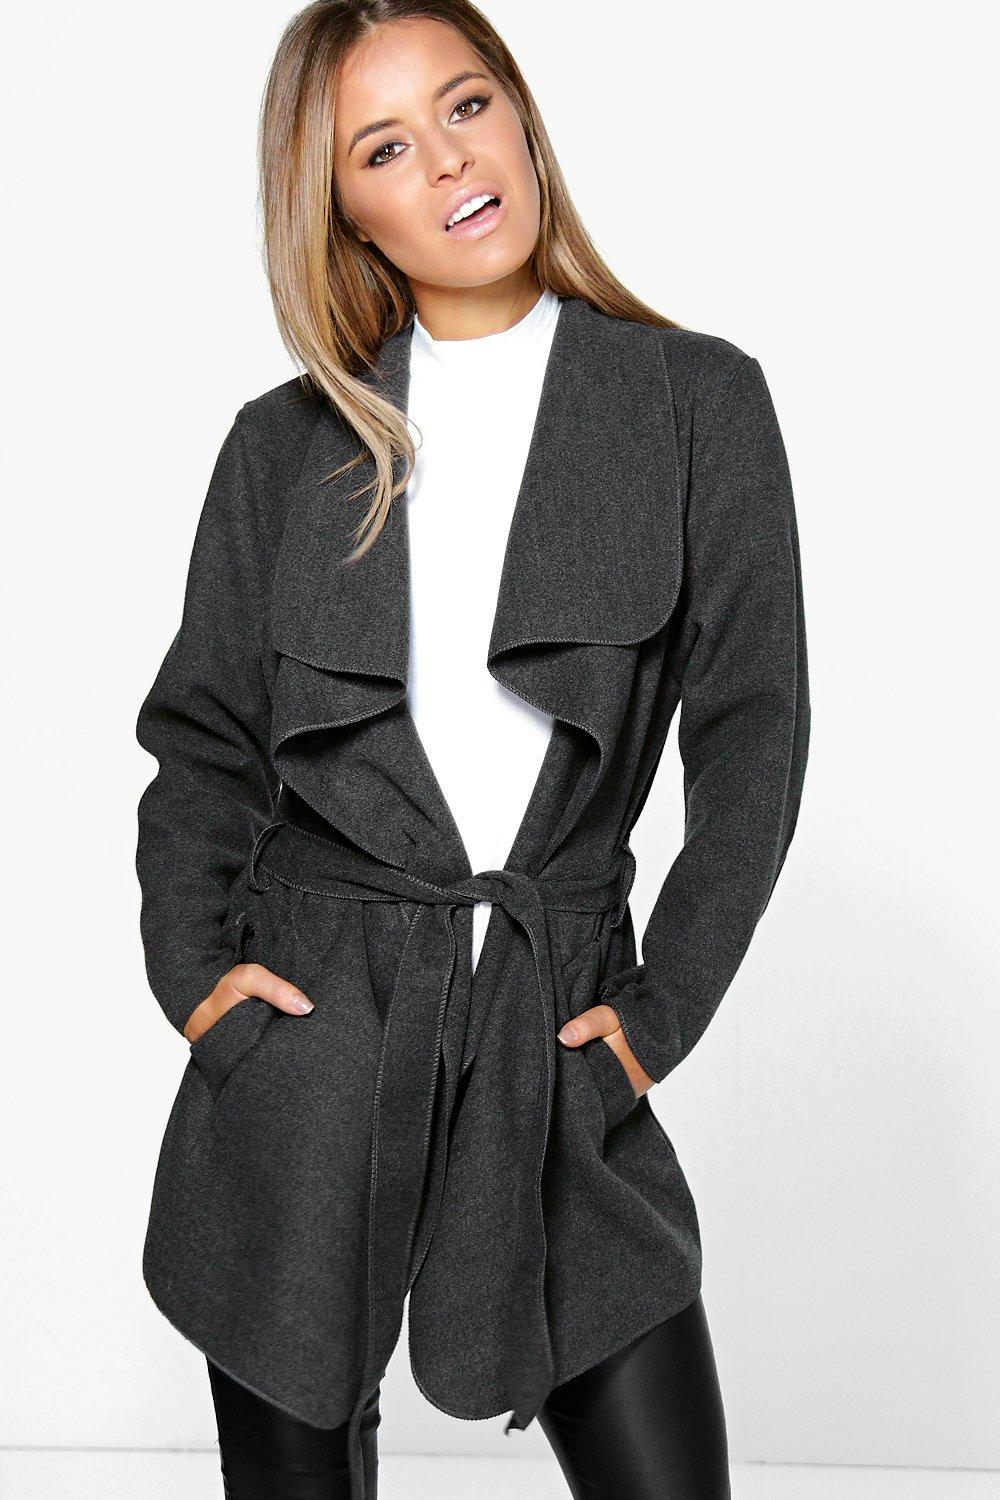 Petite-Coats. Get through the cold weather in style with petite coats. From belted trench coats and hooded raincoats to military jackets and anorak coats, you're sure to discover just what you're looking for to rock your fashionable look during the colder seasons.